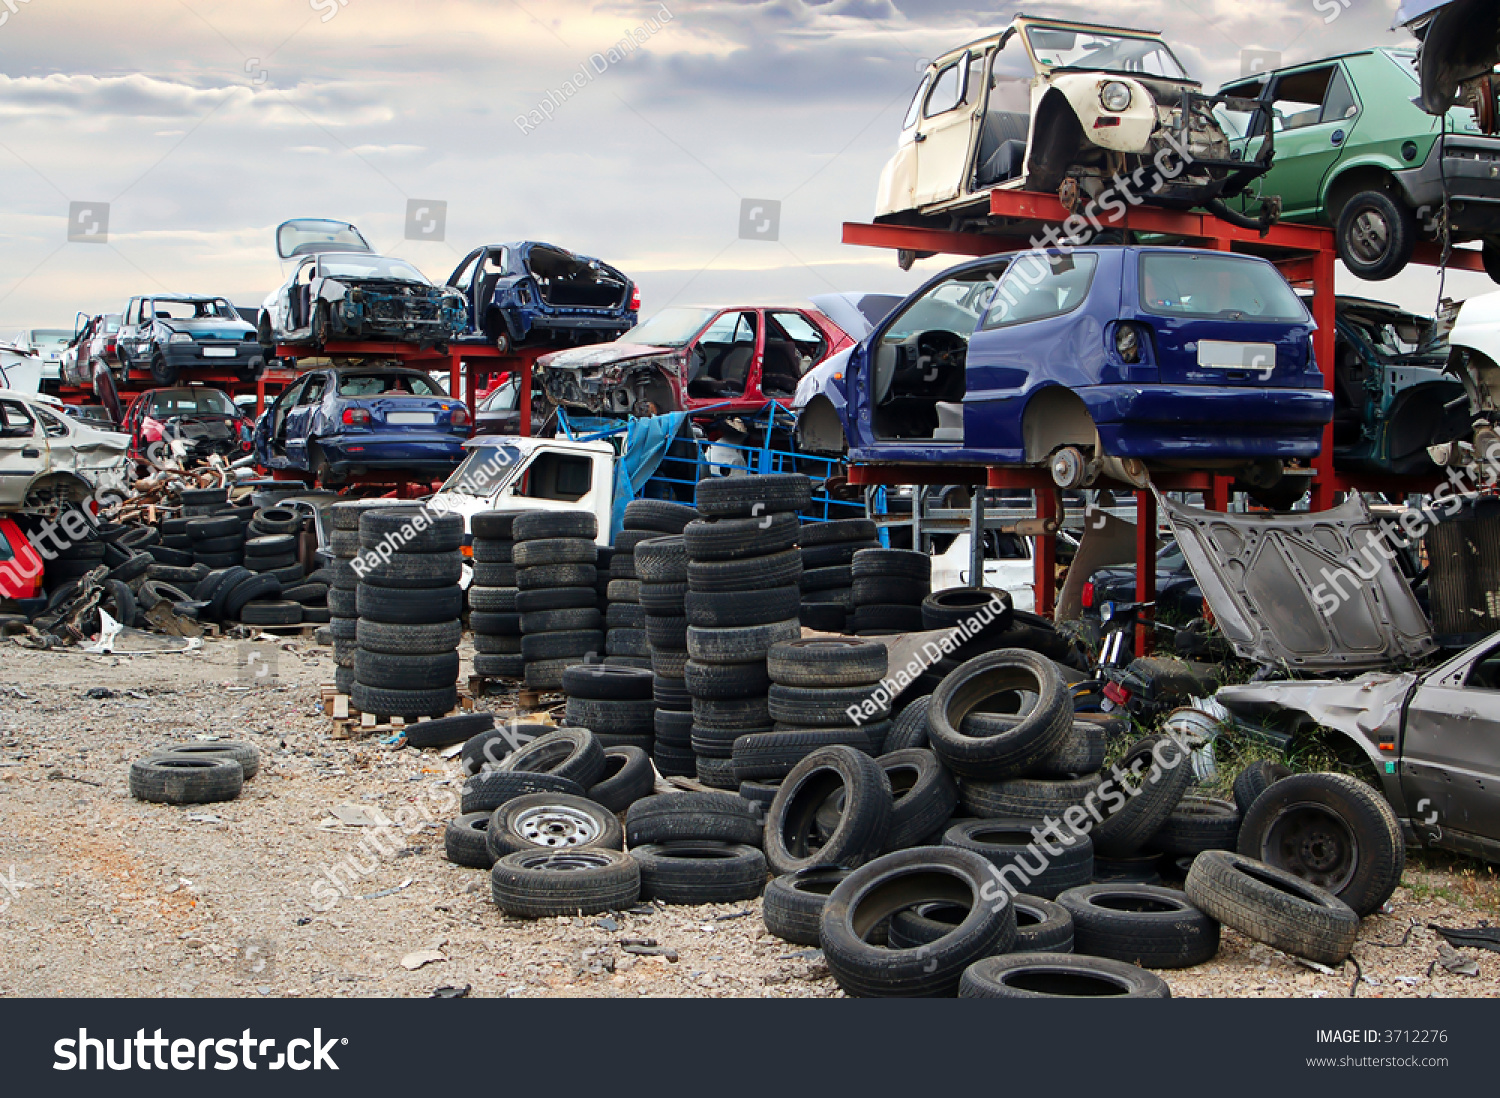 Old Vehicles Scrap Yard Stock Photo (Safe to Use) 3712276 - Shutterstock